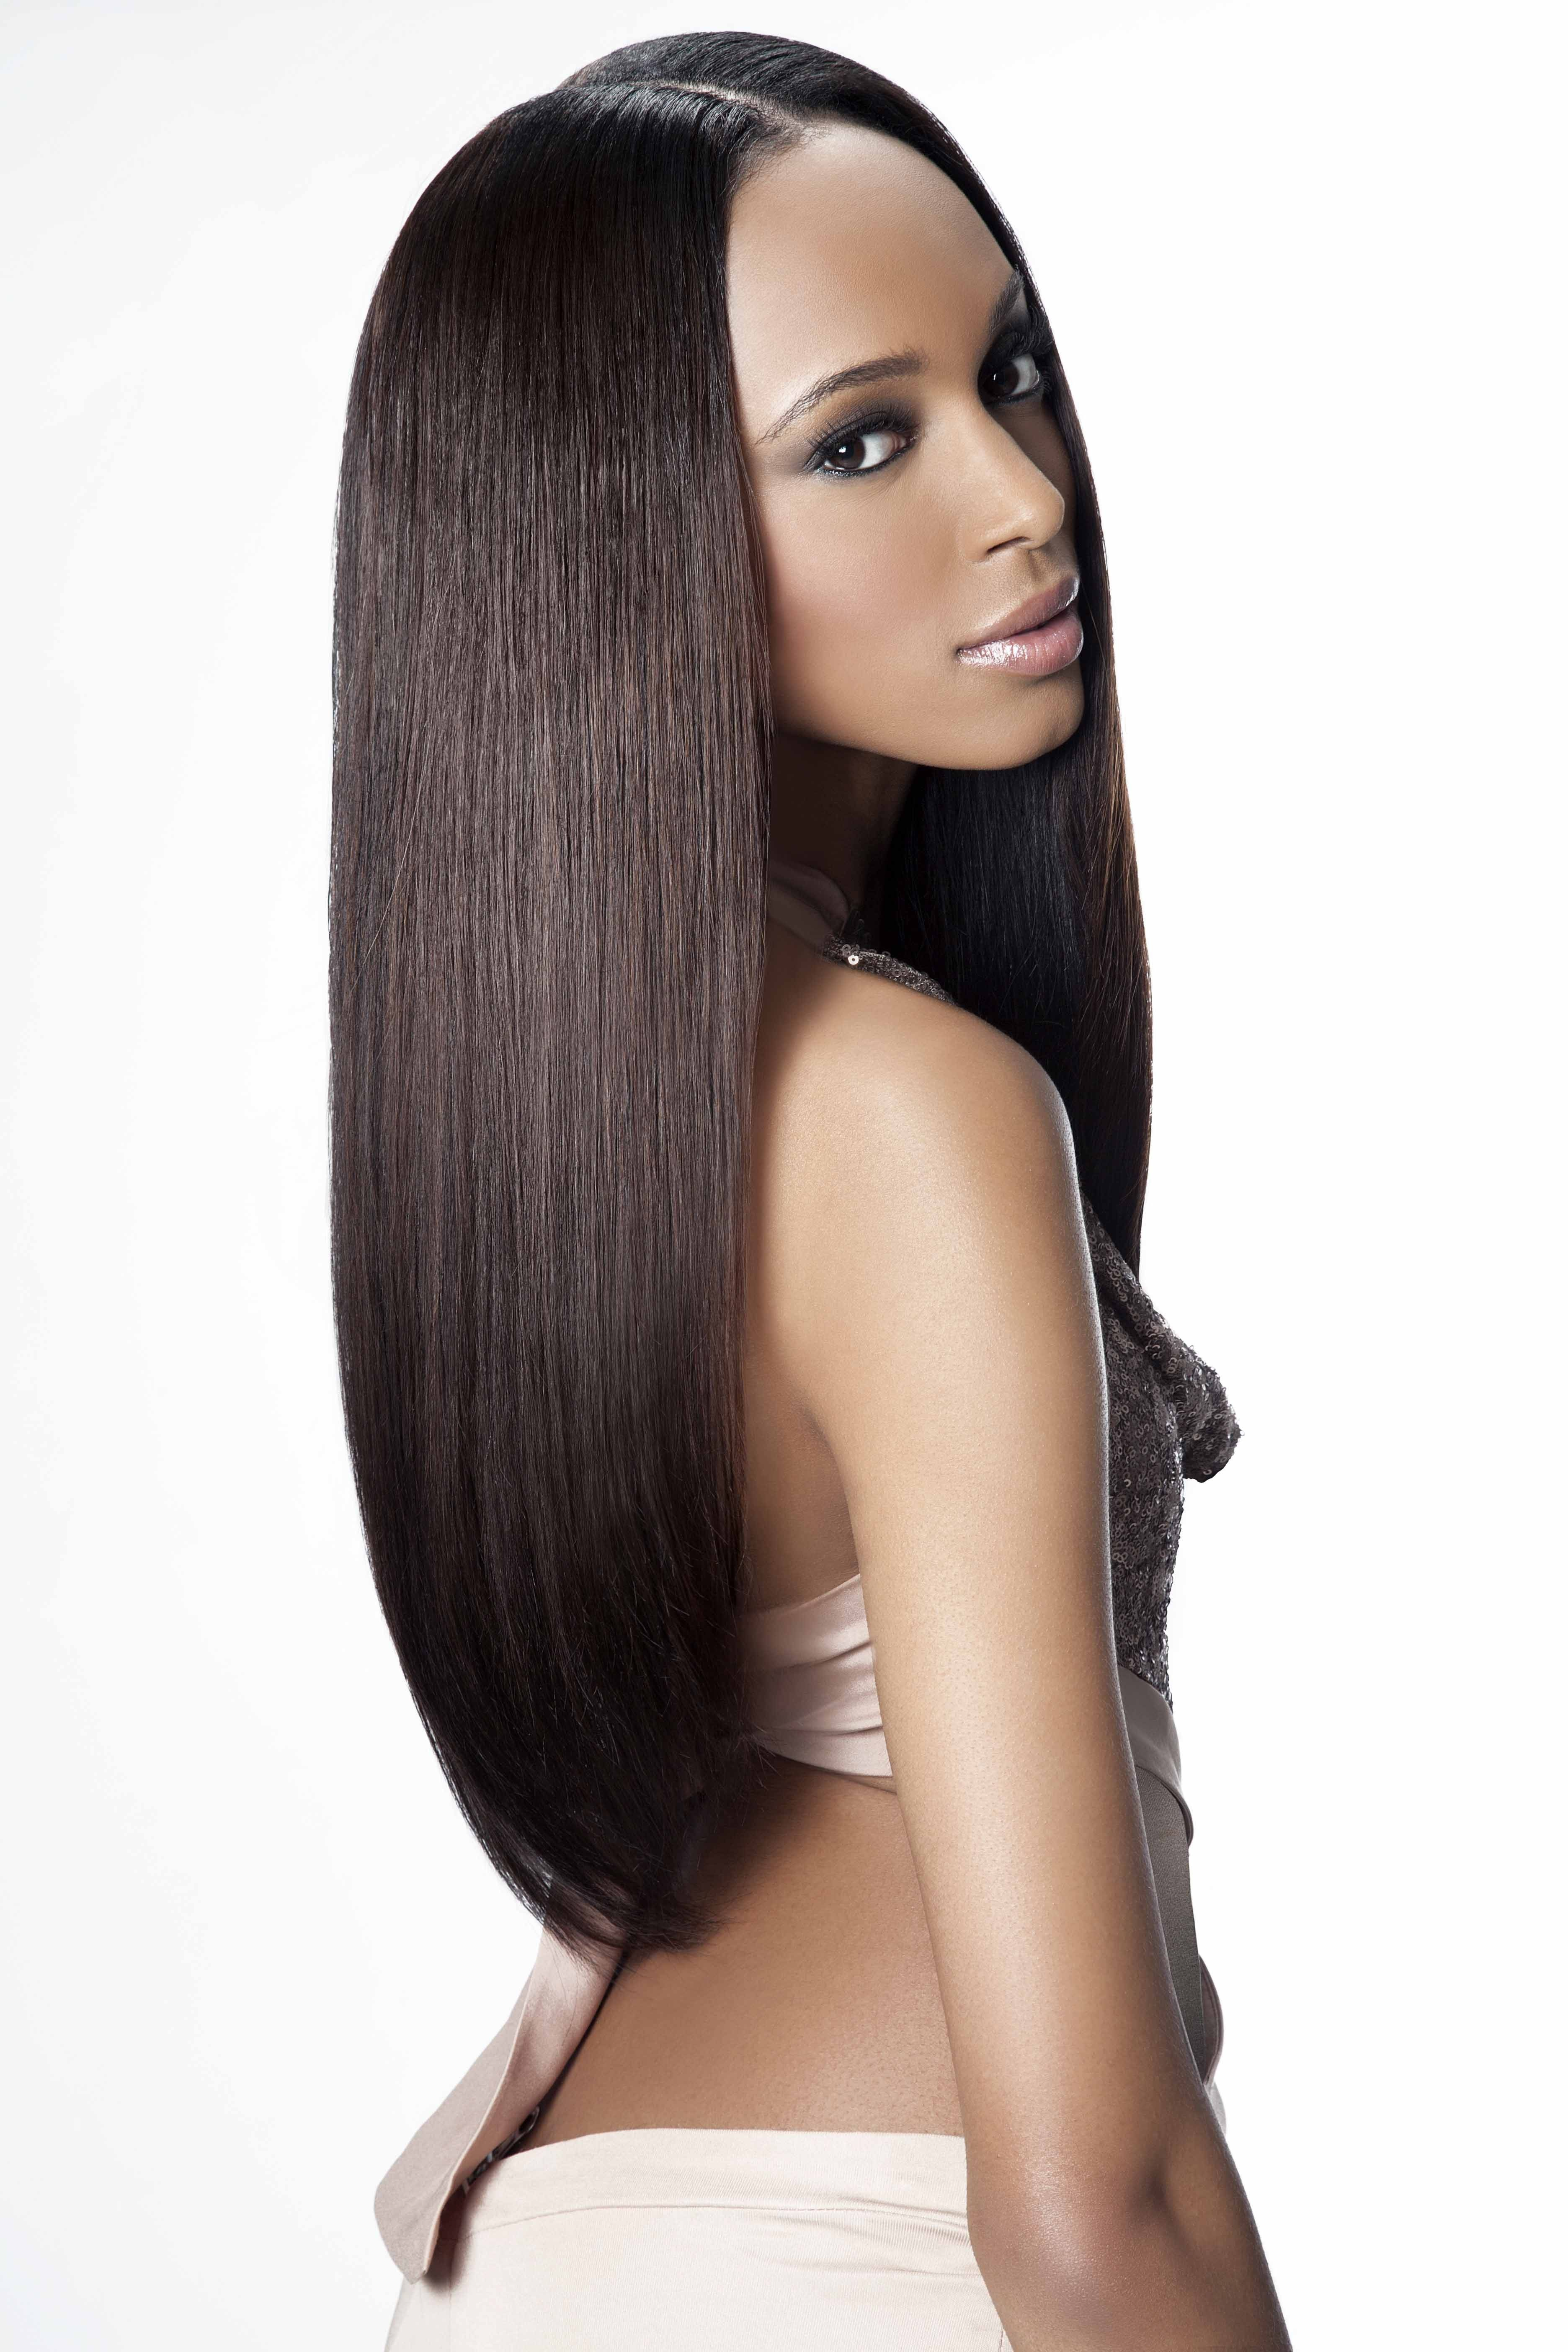 Have You Ever Heard Of Japanese Hair Straightening Learn All The Details About This